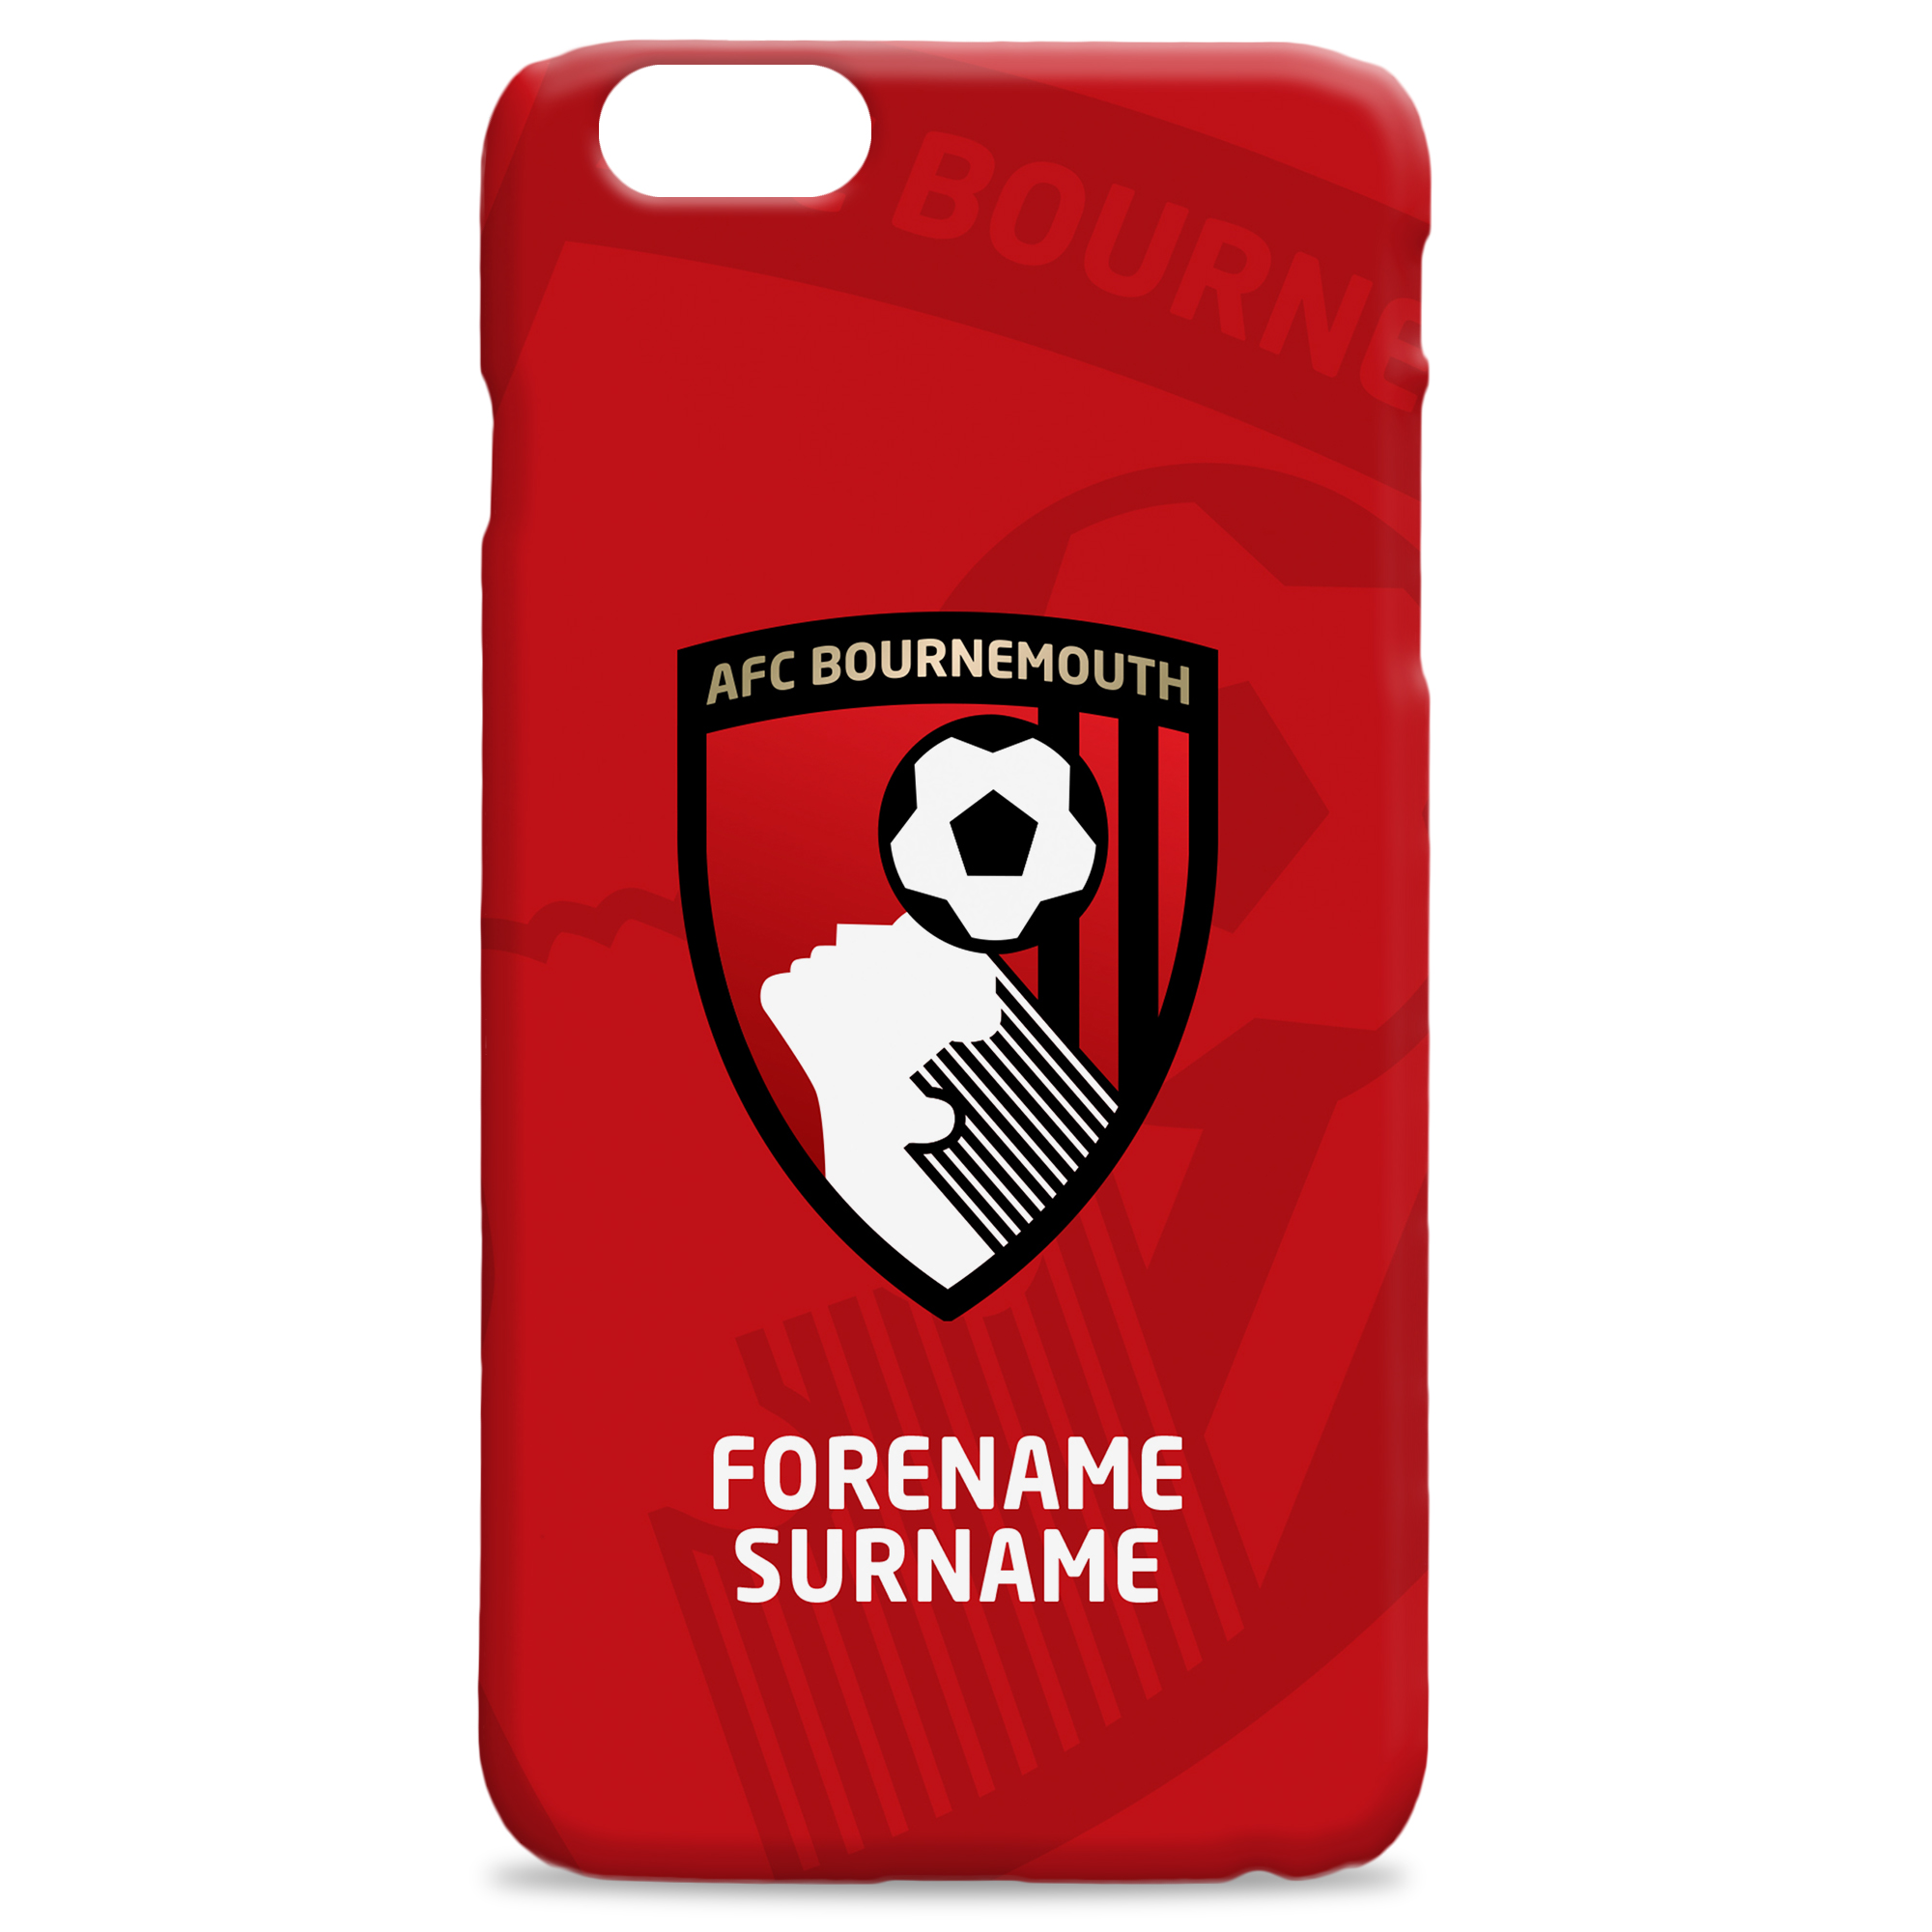 AFC Bournemouth Bold Crest Hard Back Phone Case